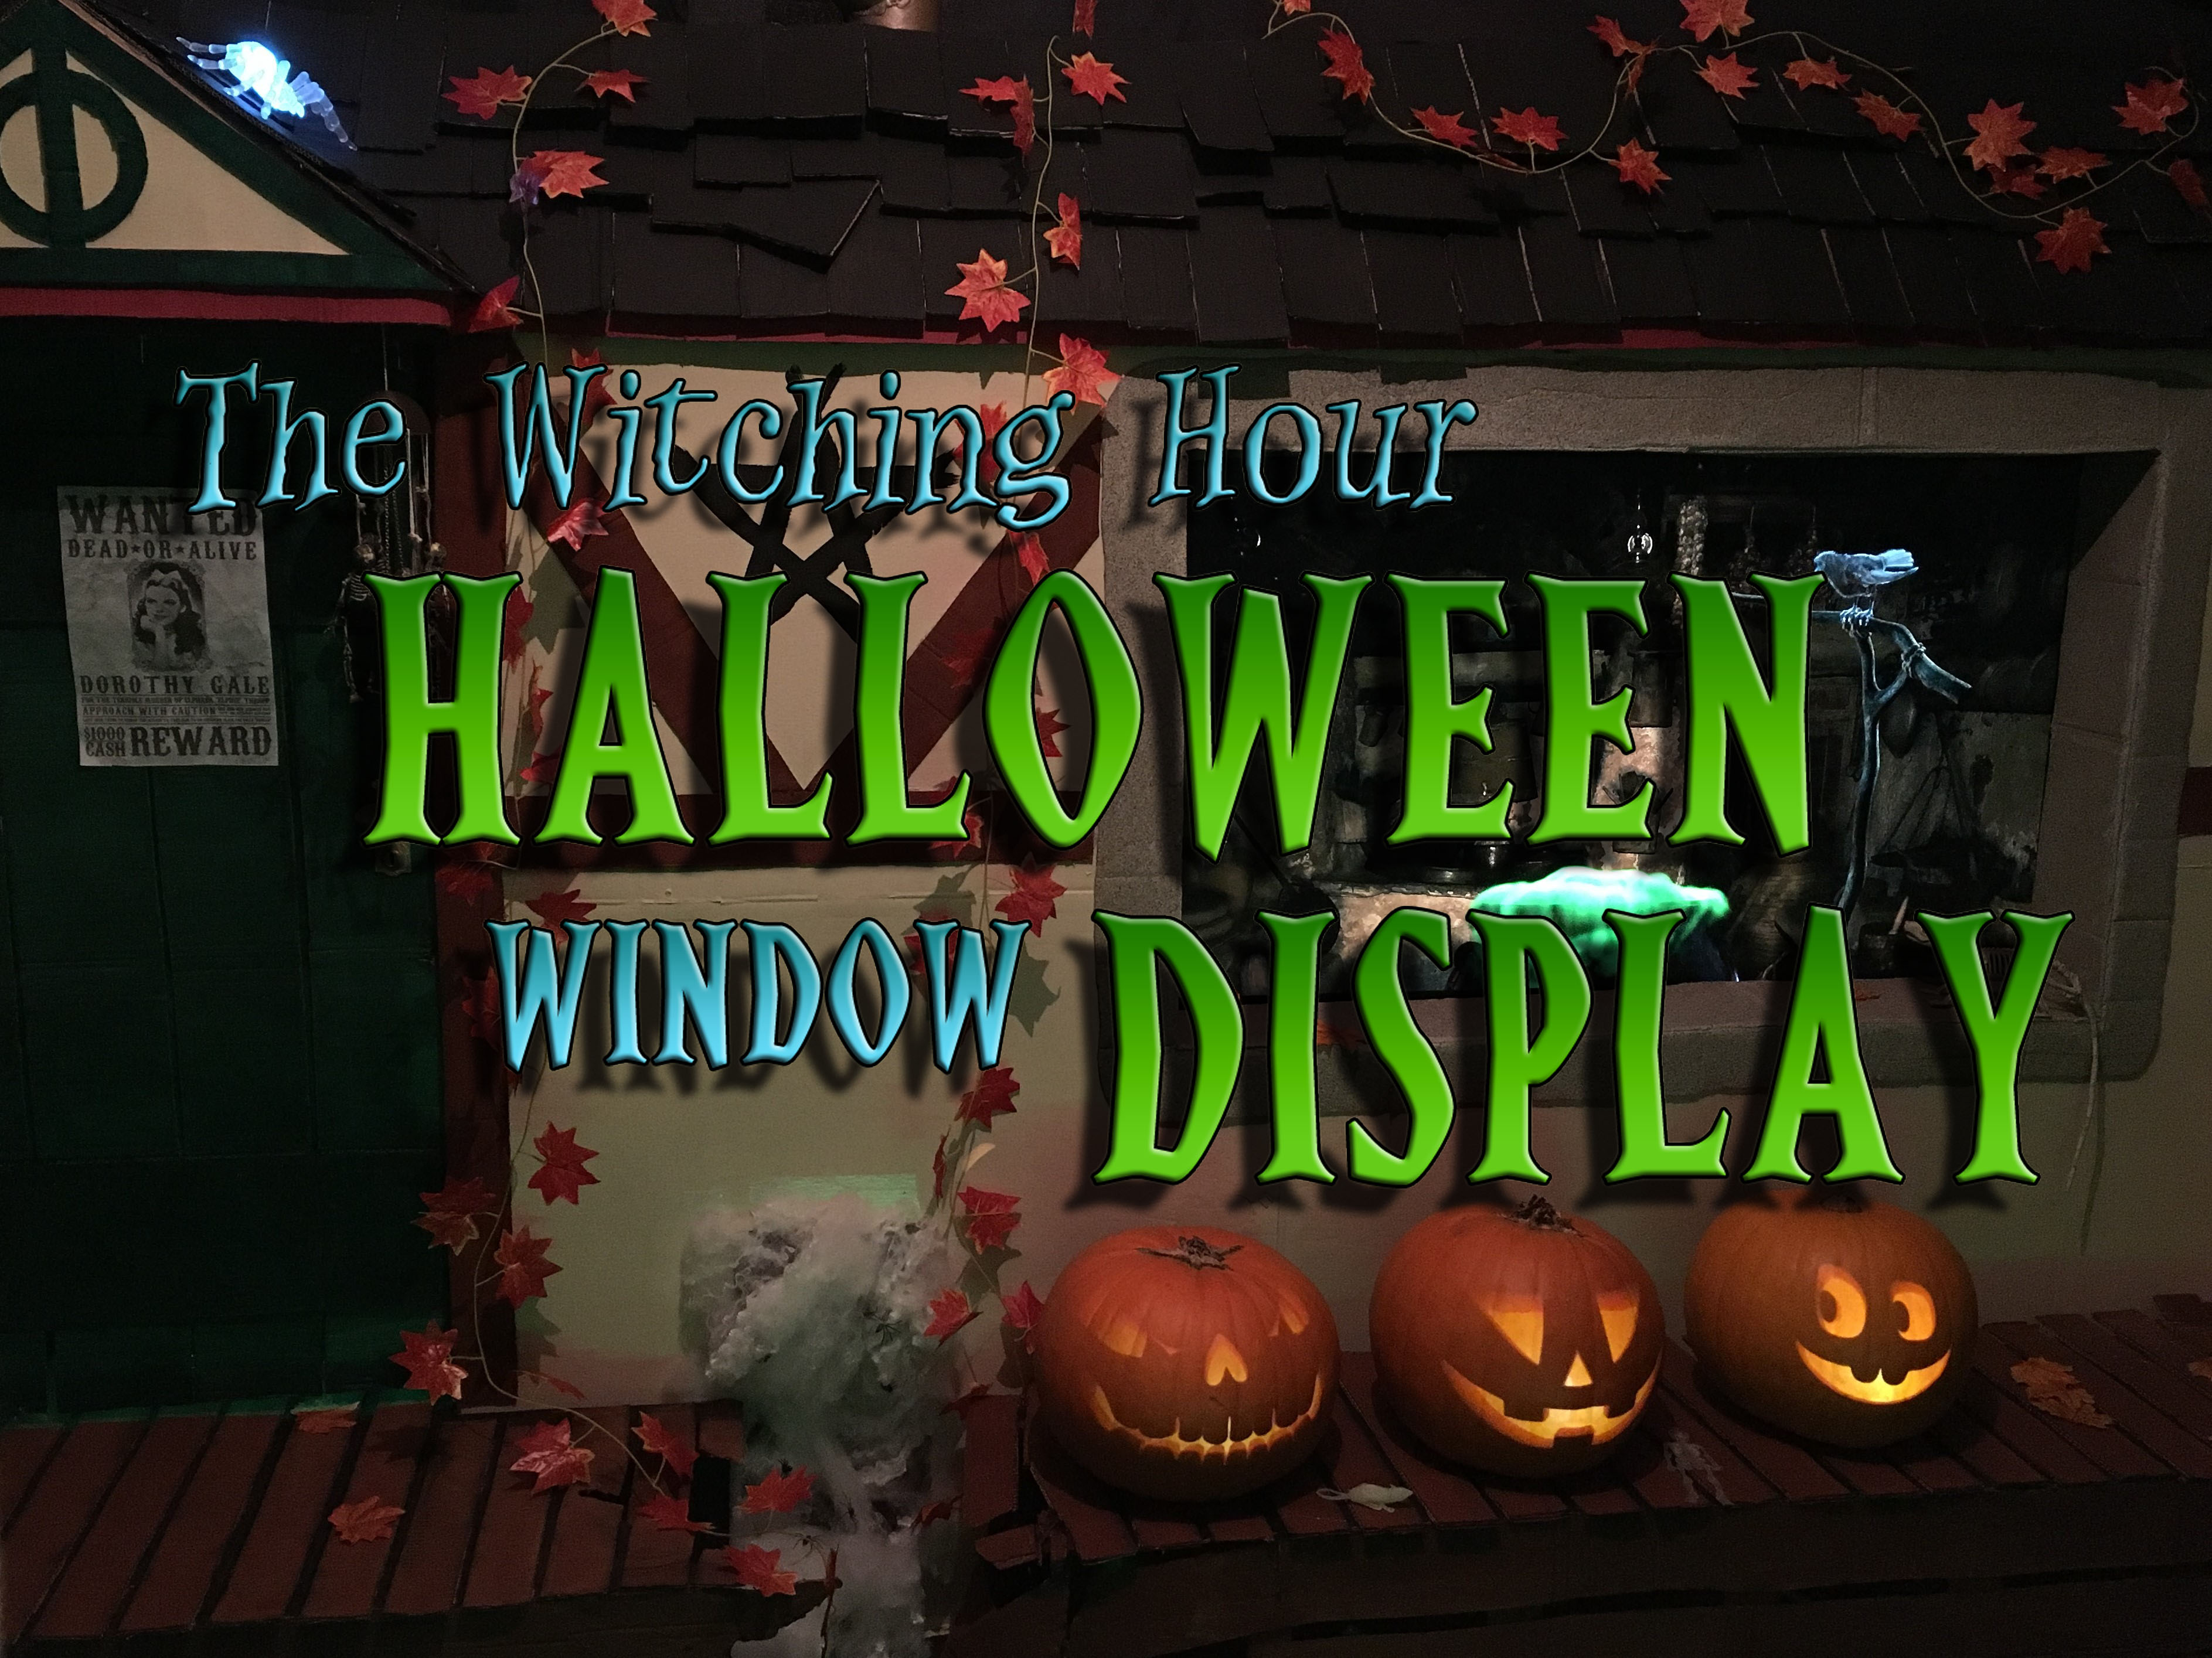 Picture of The Witching Hour Halloween Window Display